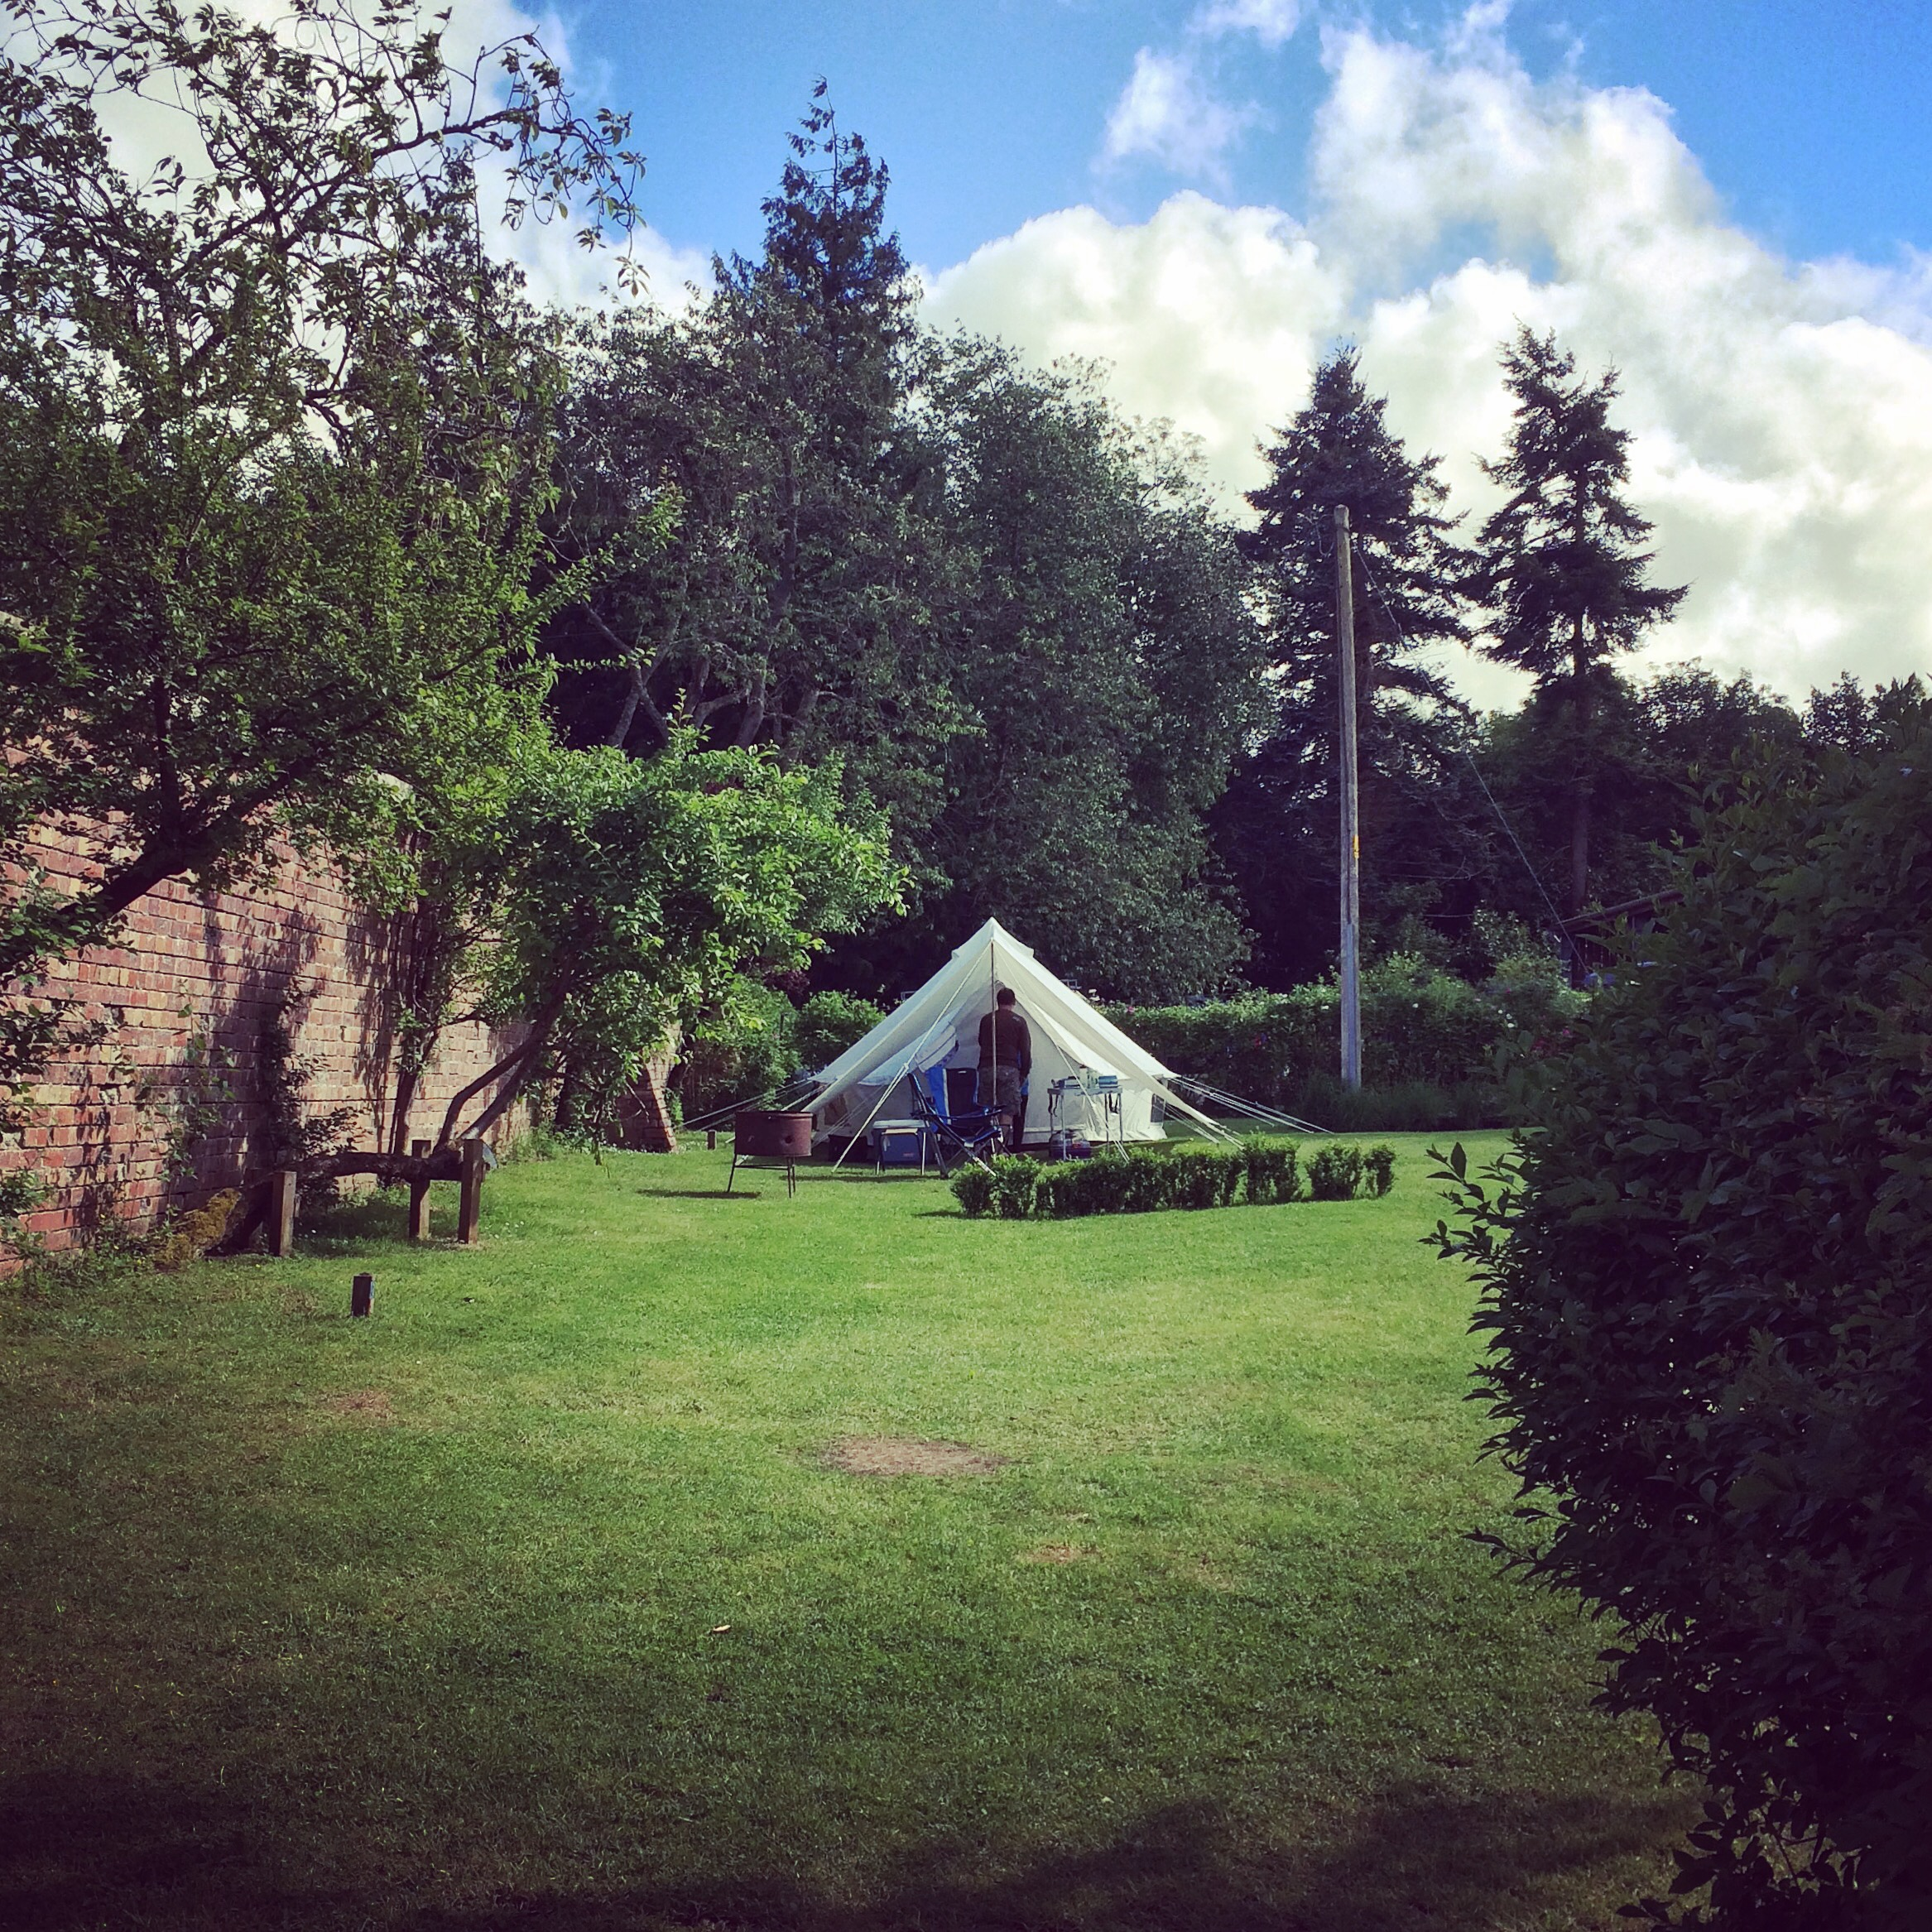 Bell Tent pitched in the Walled Garden at Ruberslaw Wild Woods camp ground, Hawick, Scottish Borders